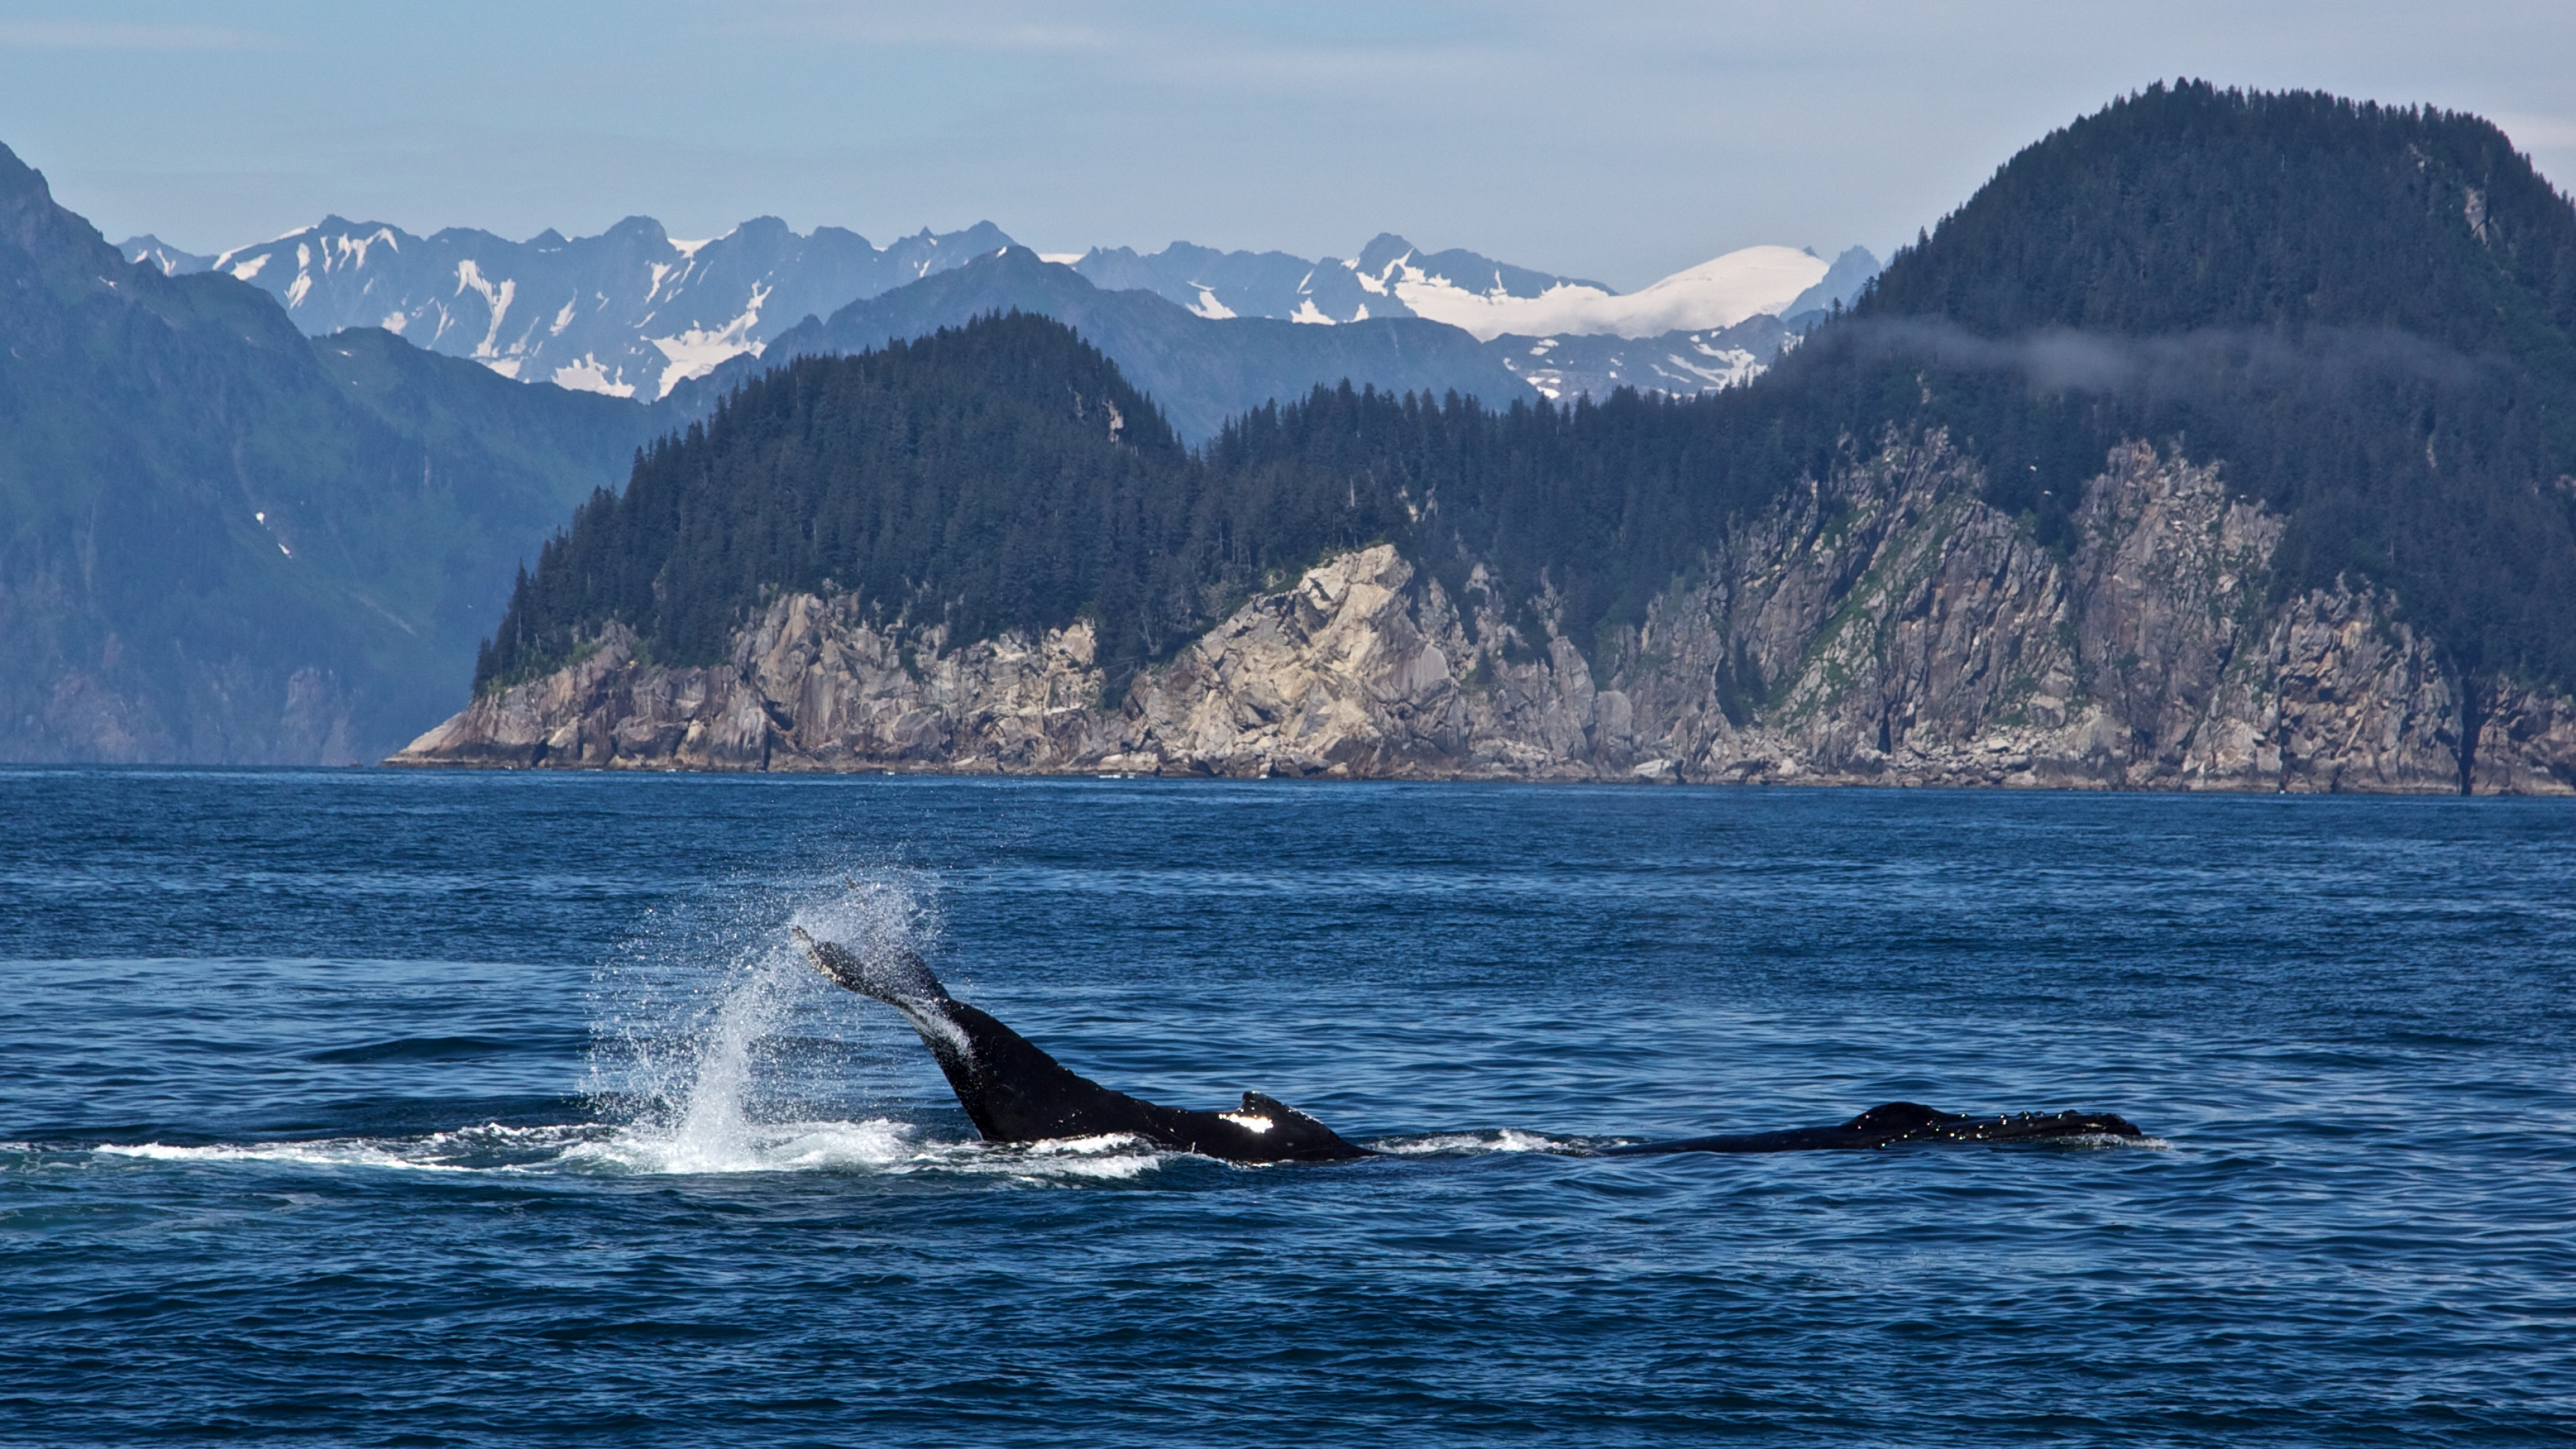 Humpback whale with a fin out of the water at Kenai Fjords National Park